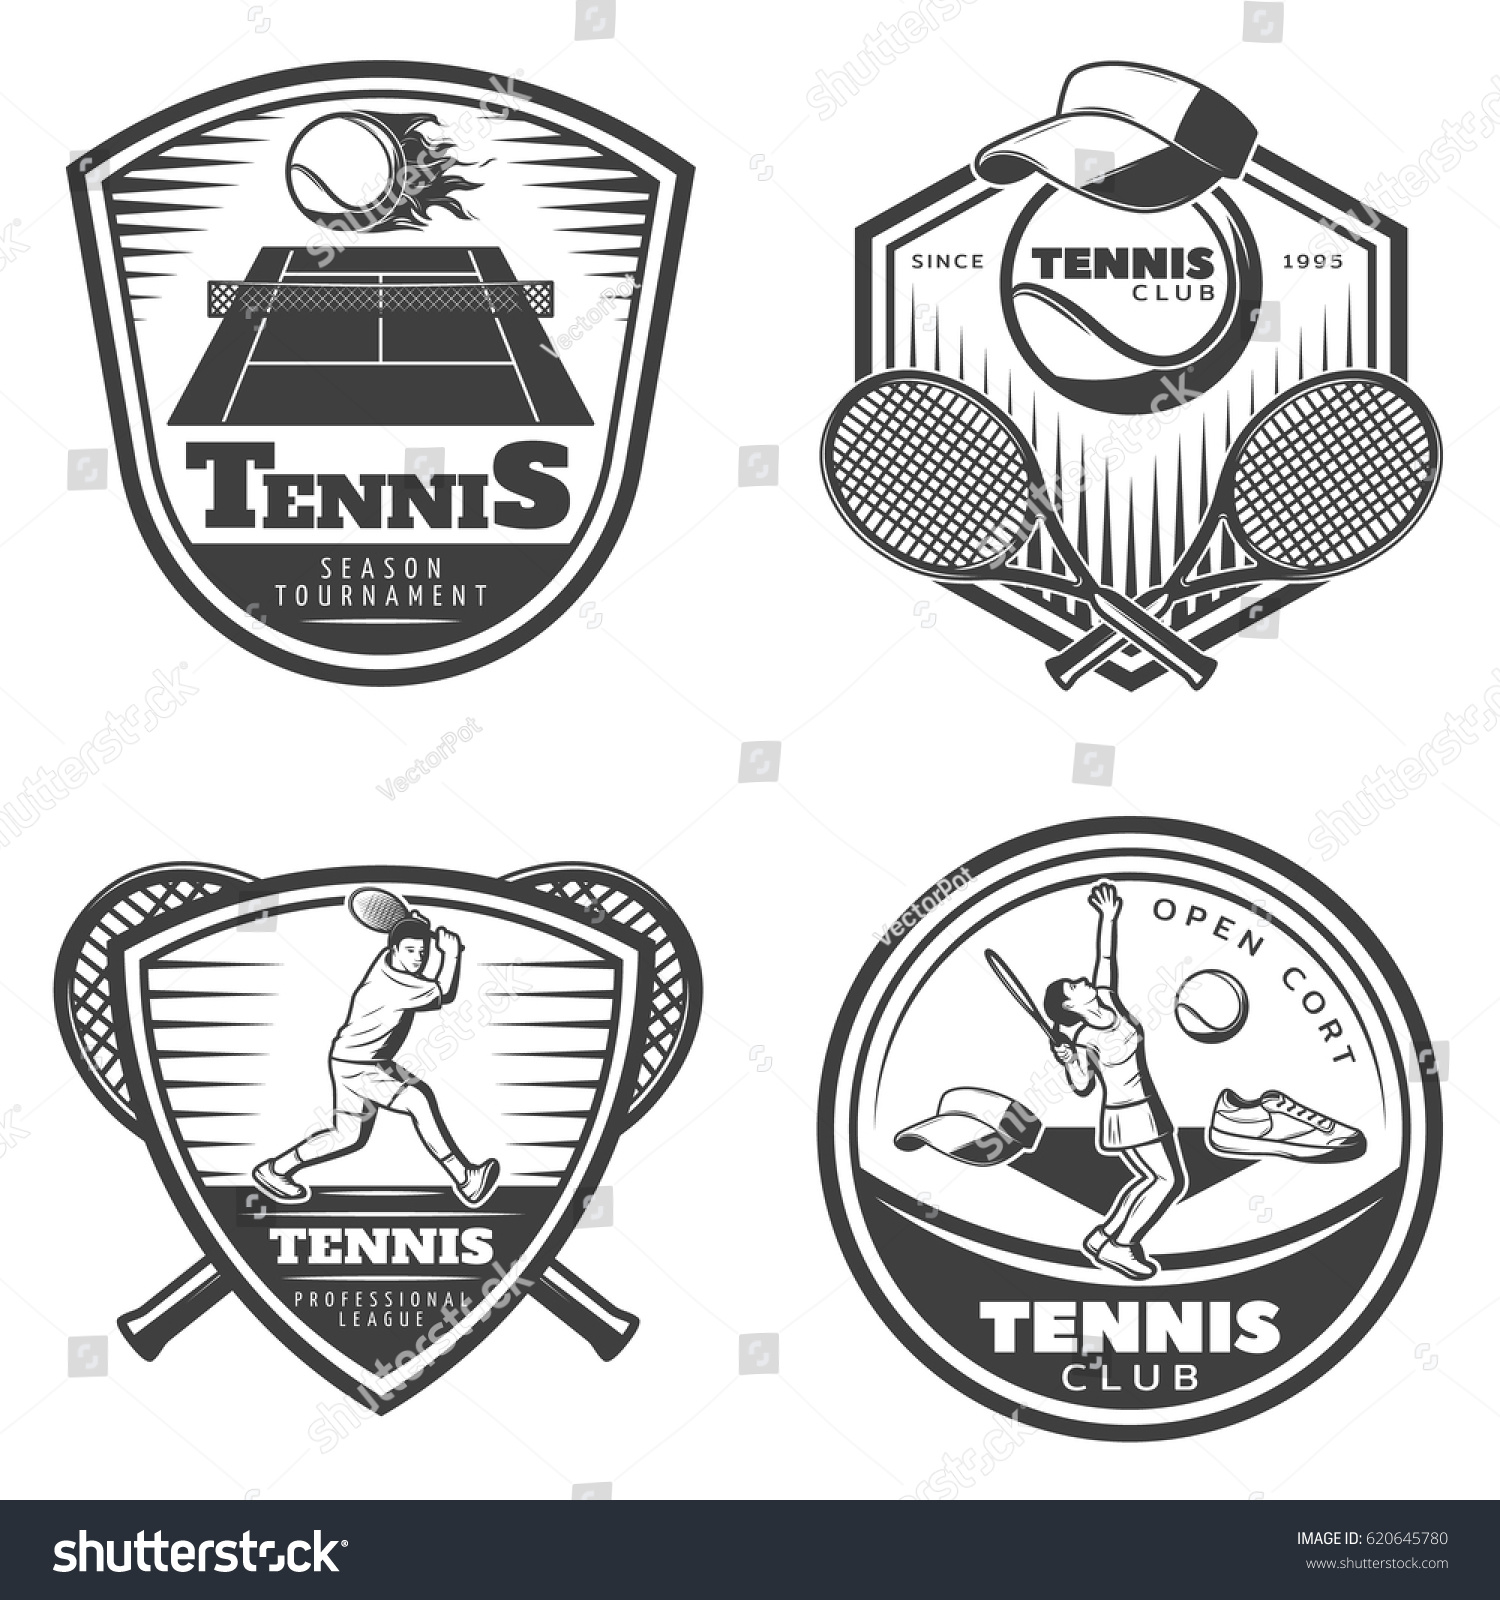 Vintage tennis emblems set flaming ball stock vector 620645780 vintage tennis emblems set with flaming ball above court sport equipment clothes and players isolated vector buycottarizona